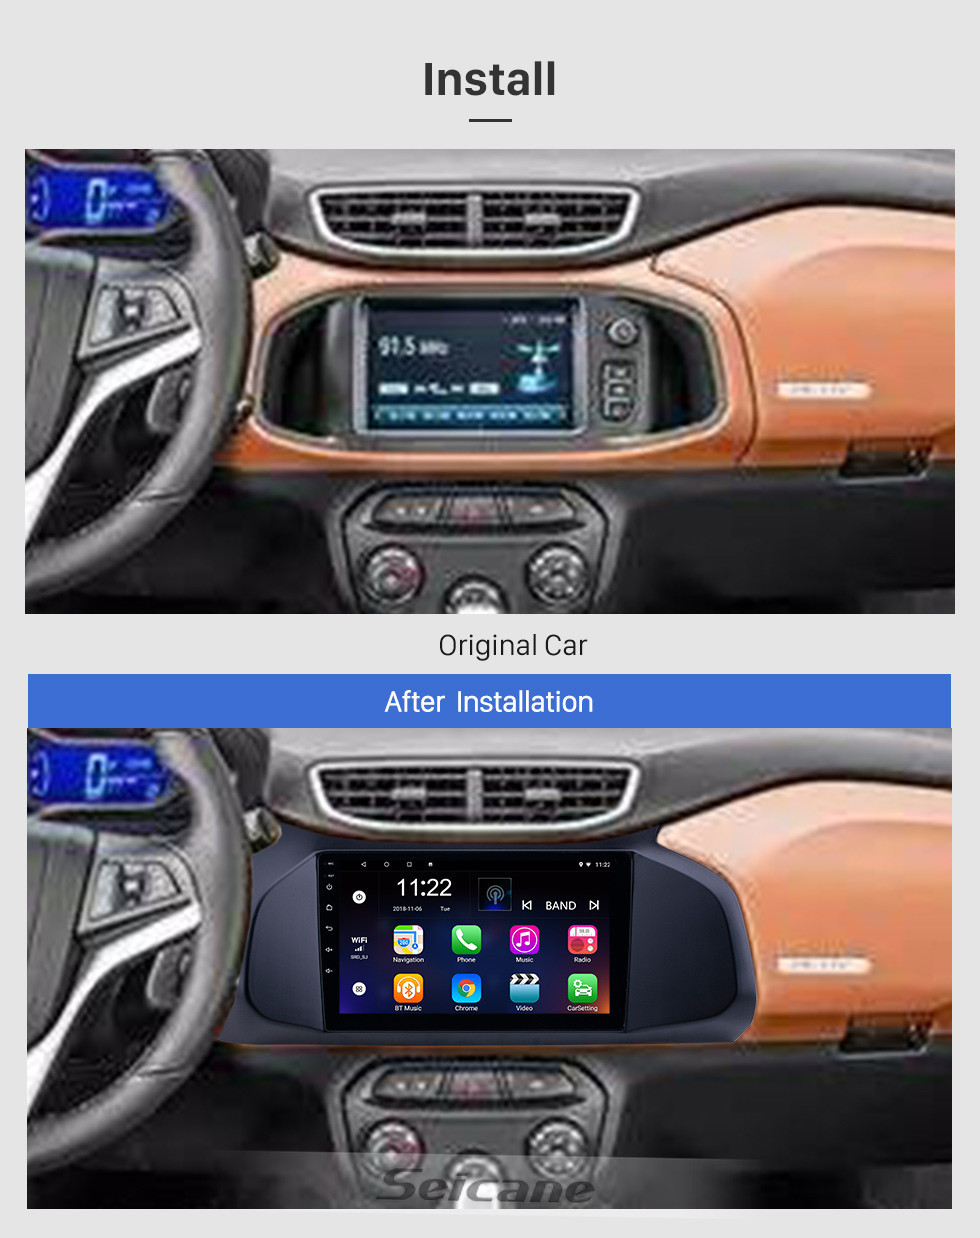 Seicane 2012-2019 Chevy Chevrolet Onix Android 10.0 HD Touchscreen 9 inch AUX Bluetooth WIFI USB GPS Navigation Radio support SWC Carplay